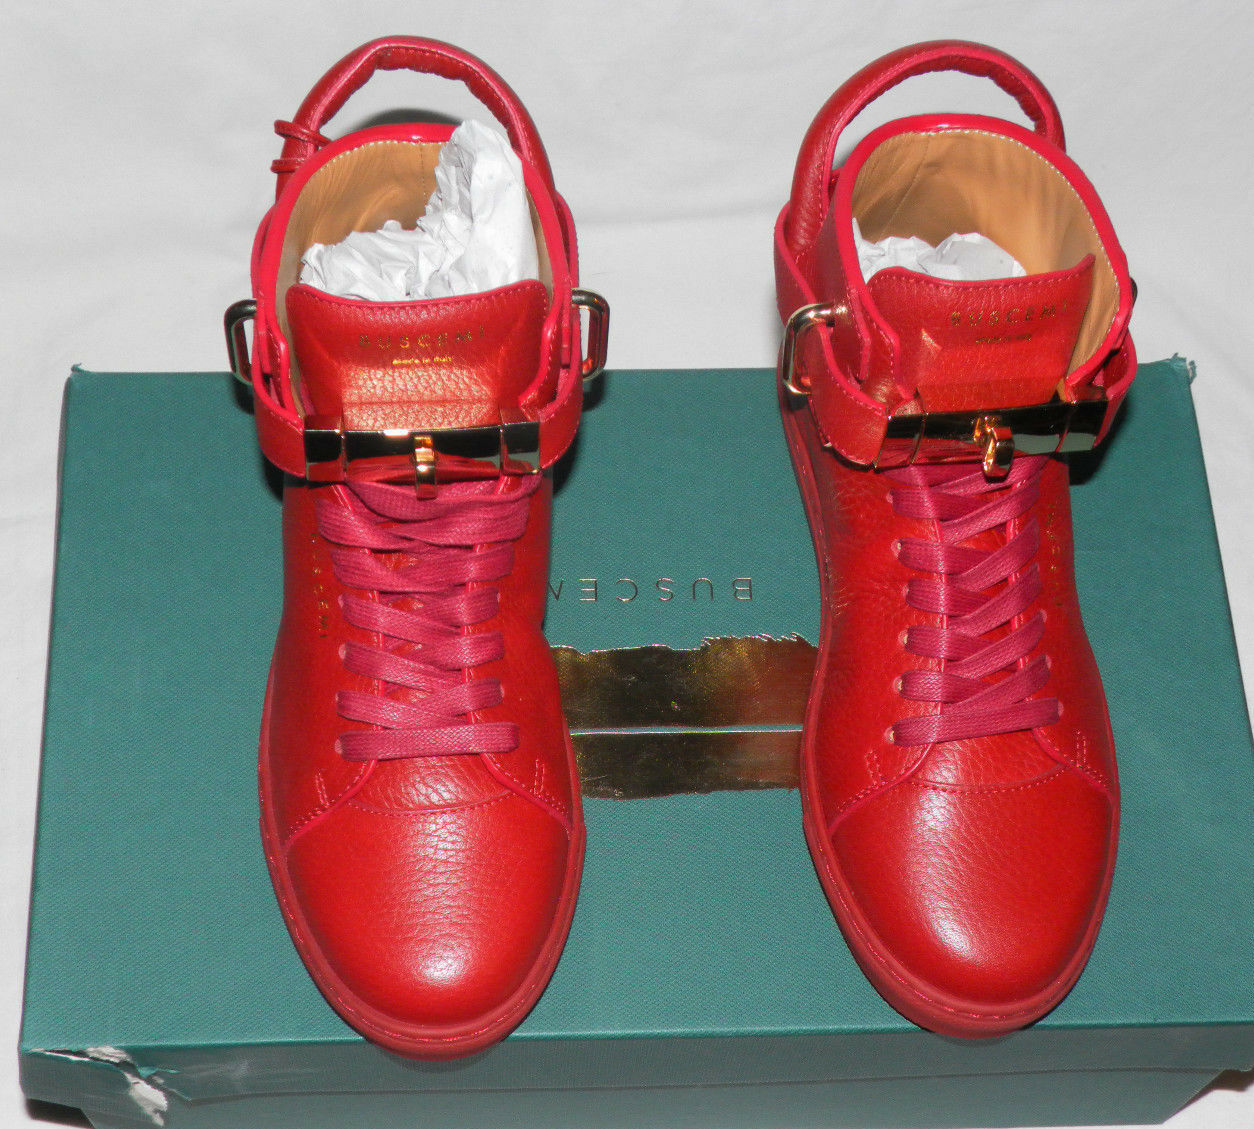 BUSCEMI 100MM TURNLOCK HIGH-TOP RED LEATHER WOMEN SNEAKER SHOES Sz. 37IT 7US